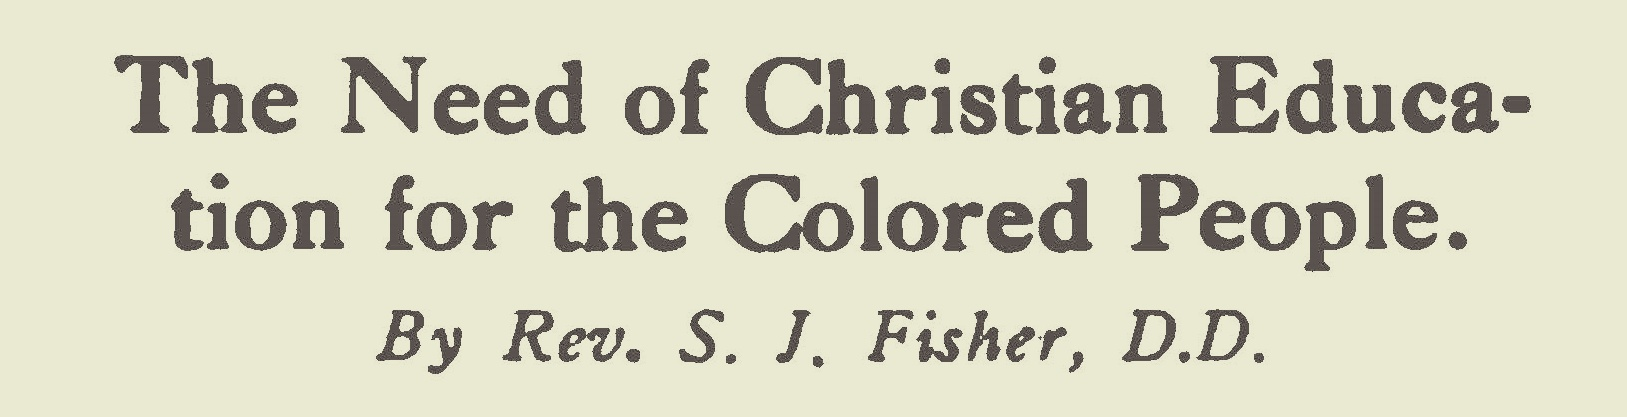 Fisher, Samuel Jackson, The Need of Christian Education for the Colored People Title Page.jpg